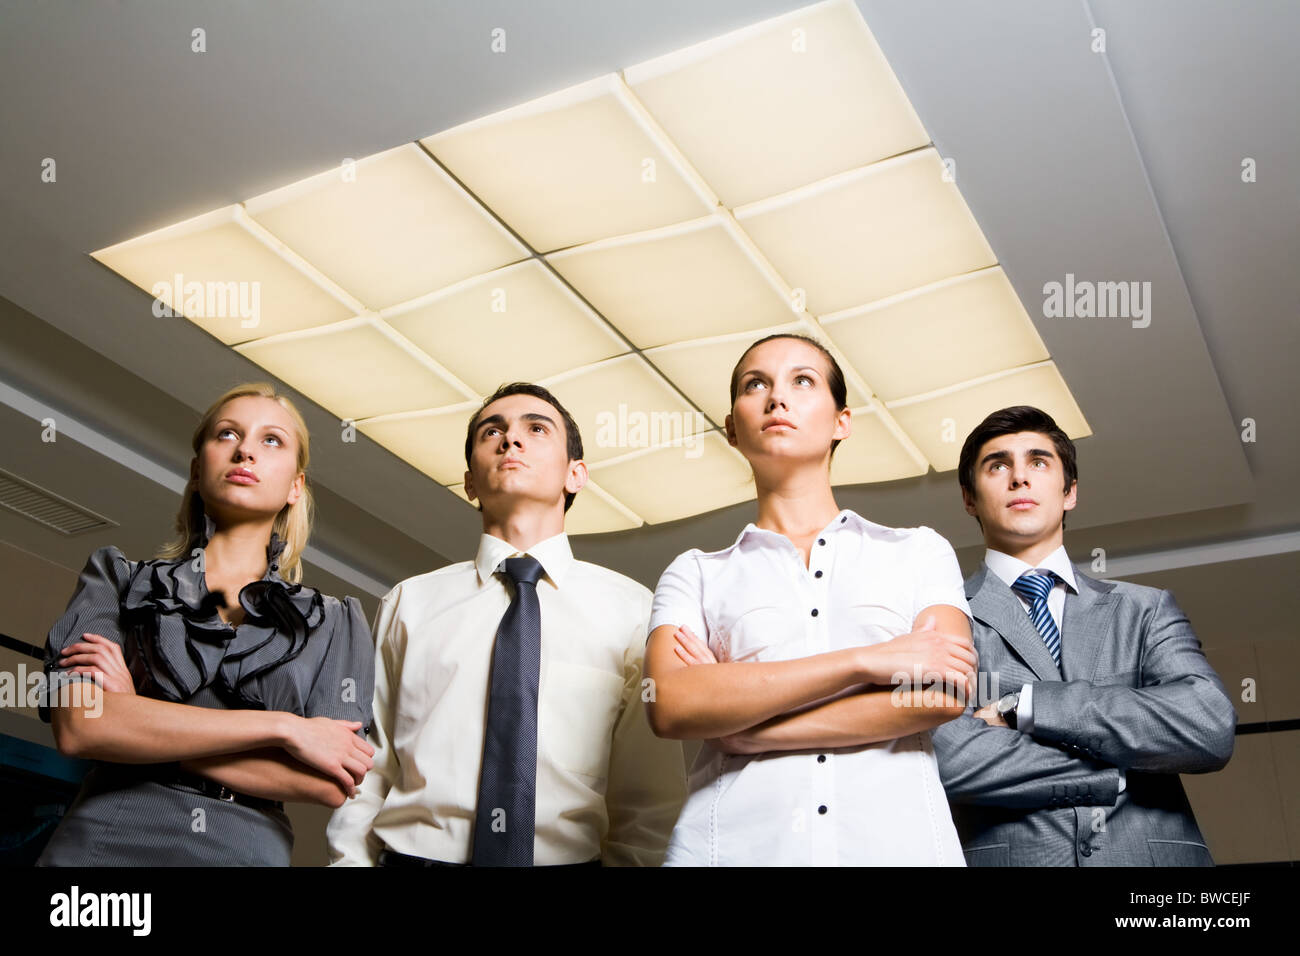 Portrait of smart associates standing in row and looking upwards seriously Stock Photo